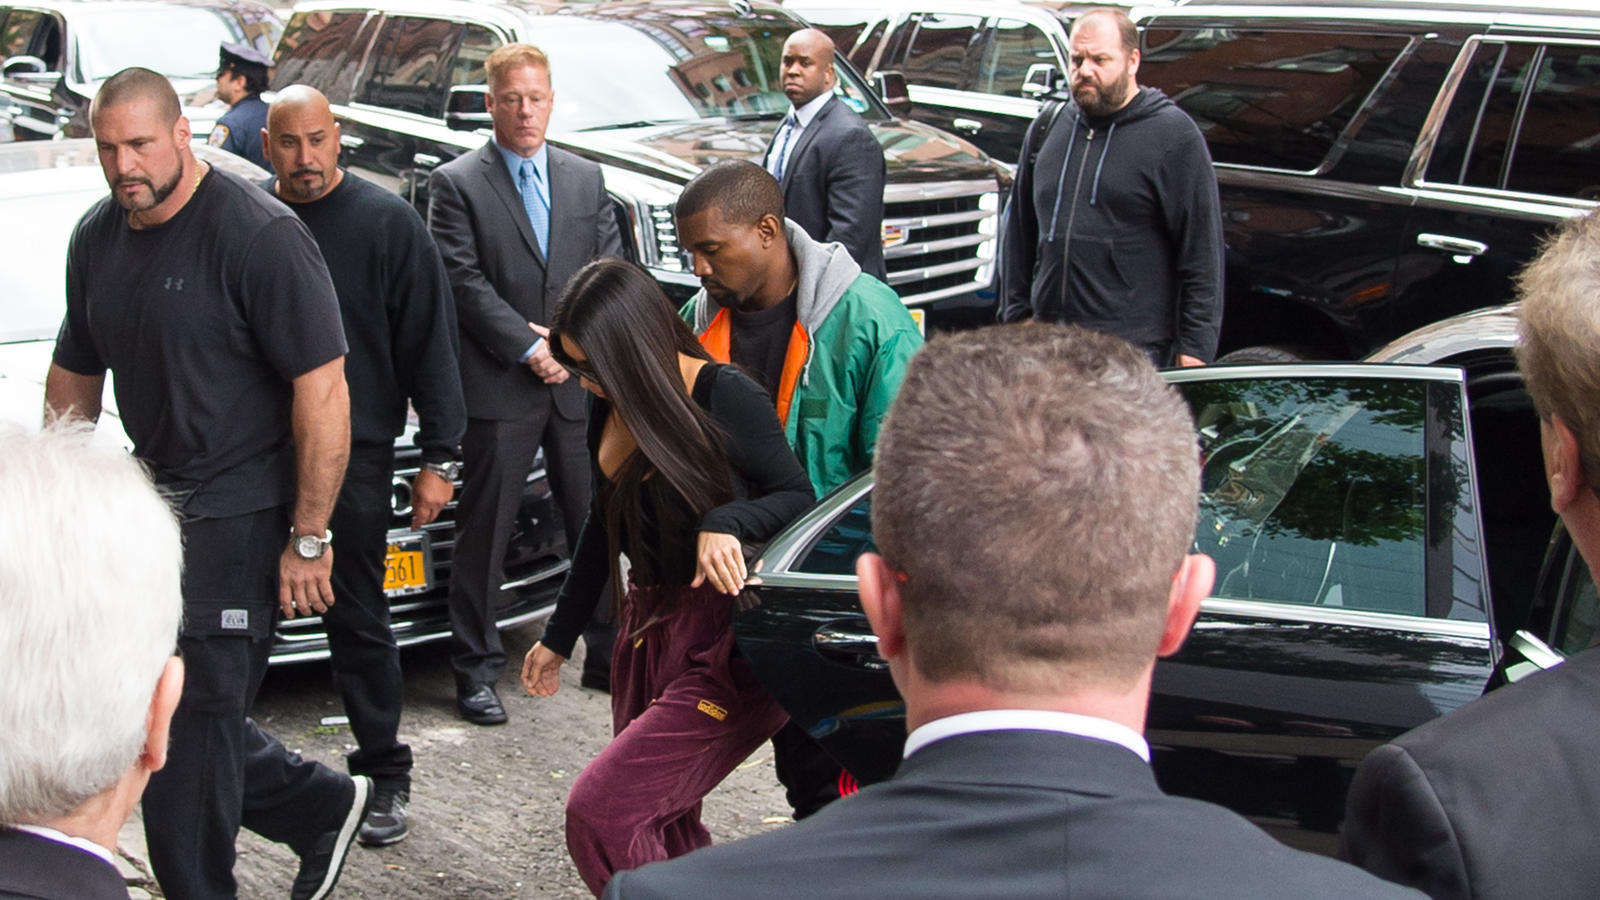 Kim Kardashian and Kanye West are seen in Tribeca in New York City the day after Kim was robbed at gunpoint in Paris.